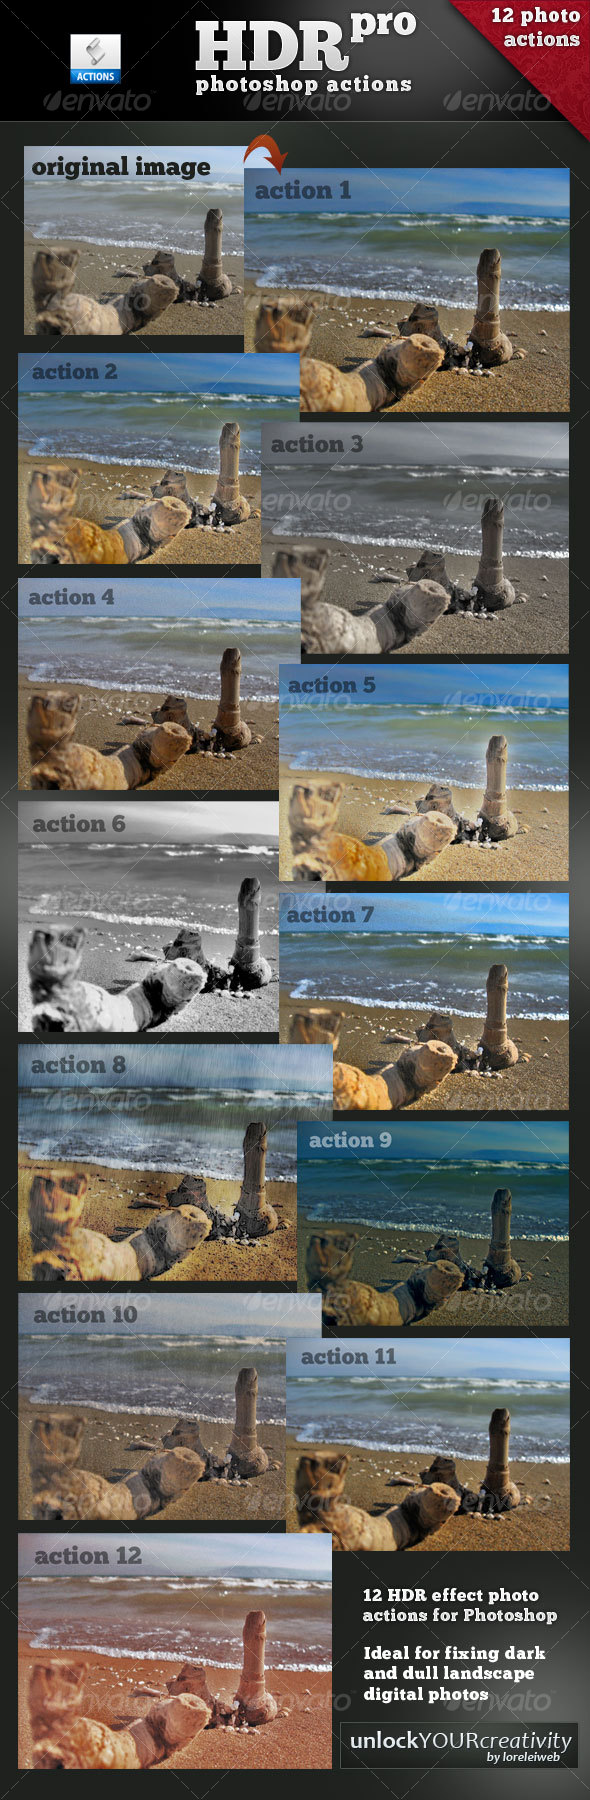 12 HDR pro Actions - Photoshop Add-ons